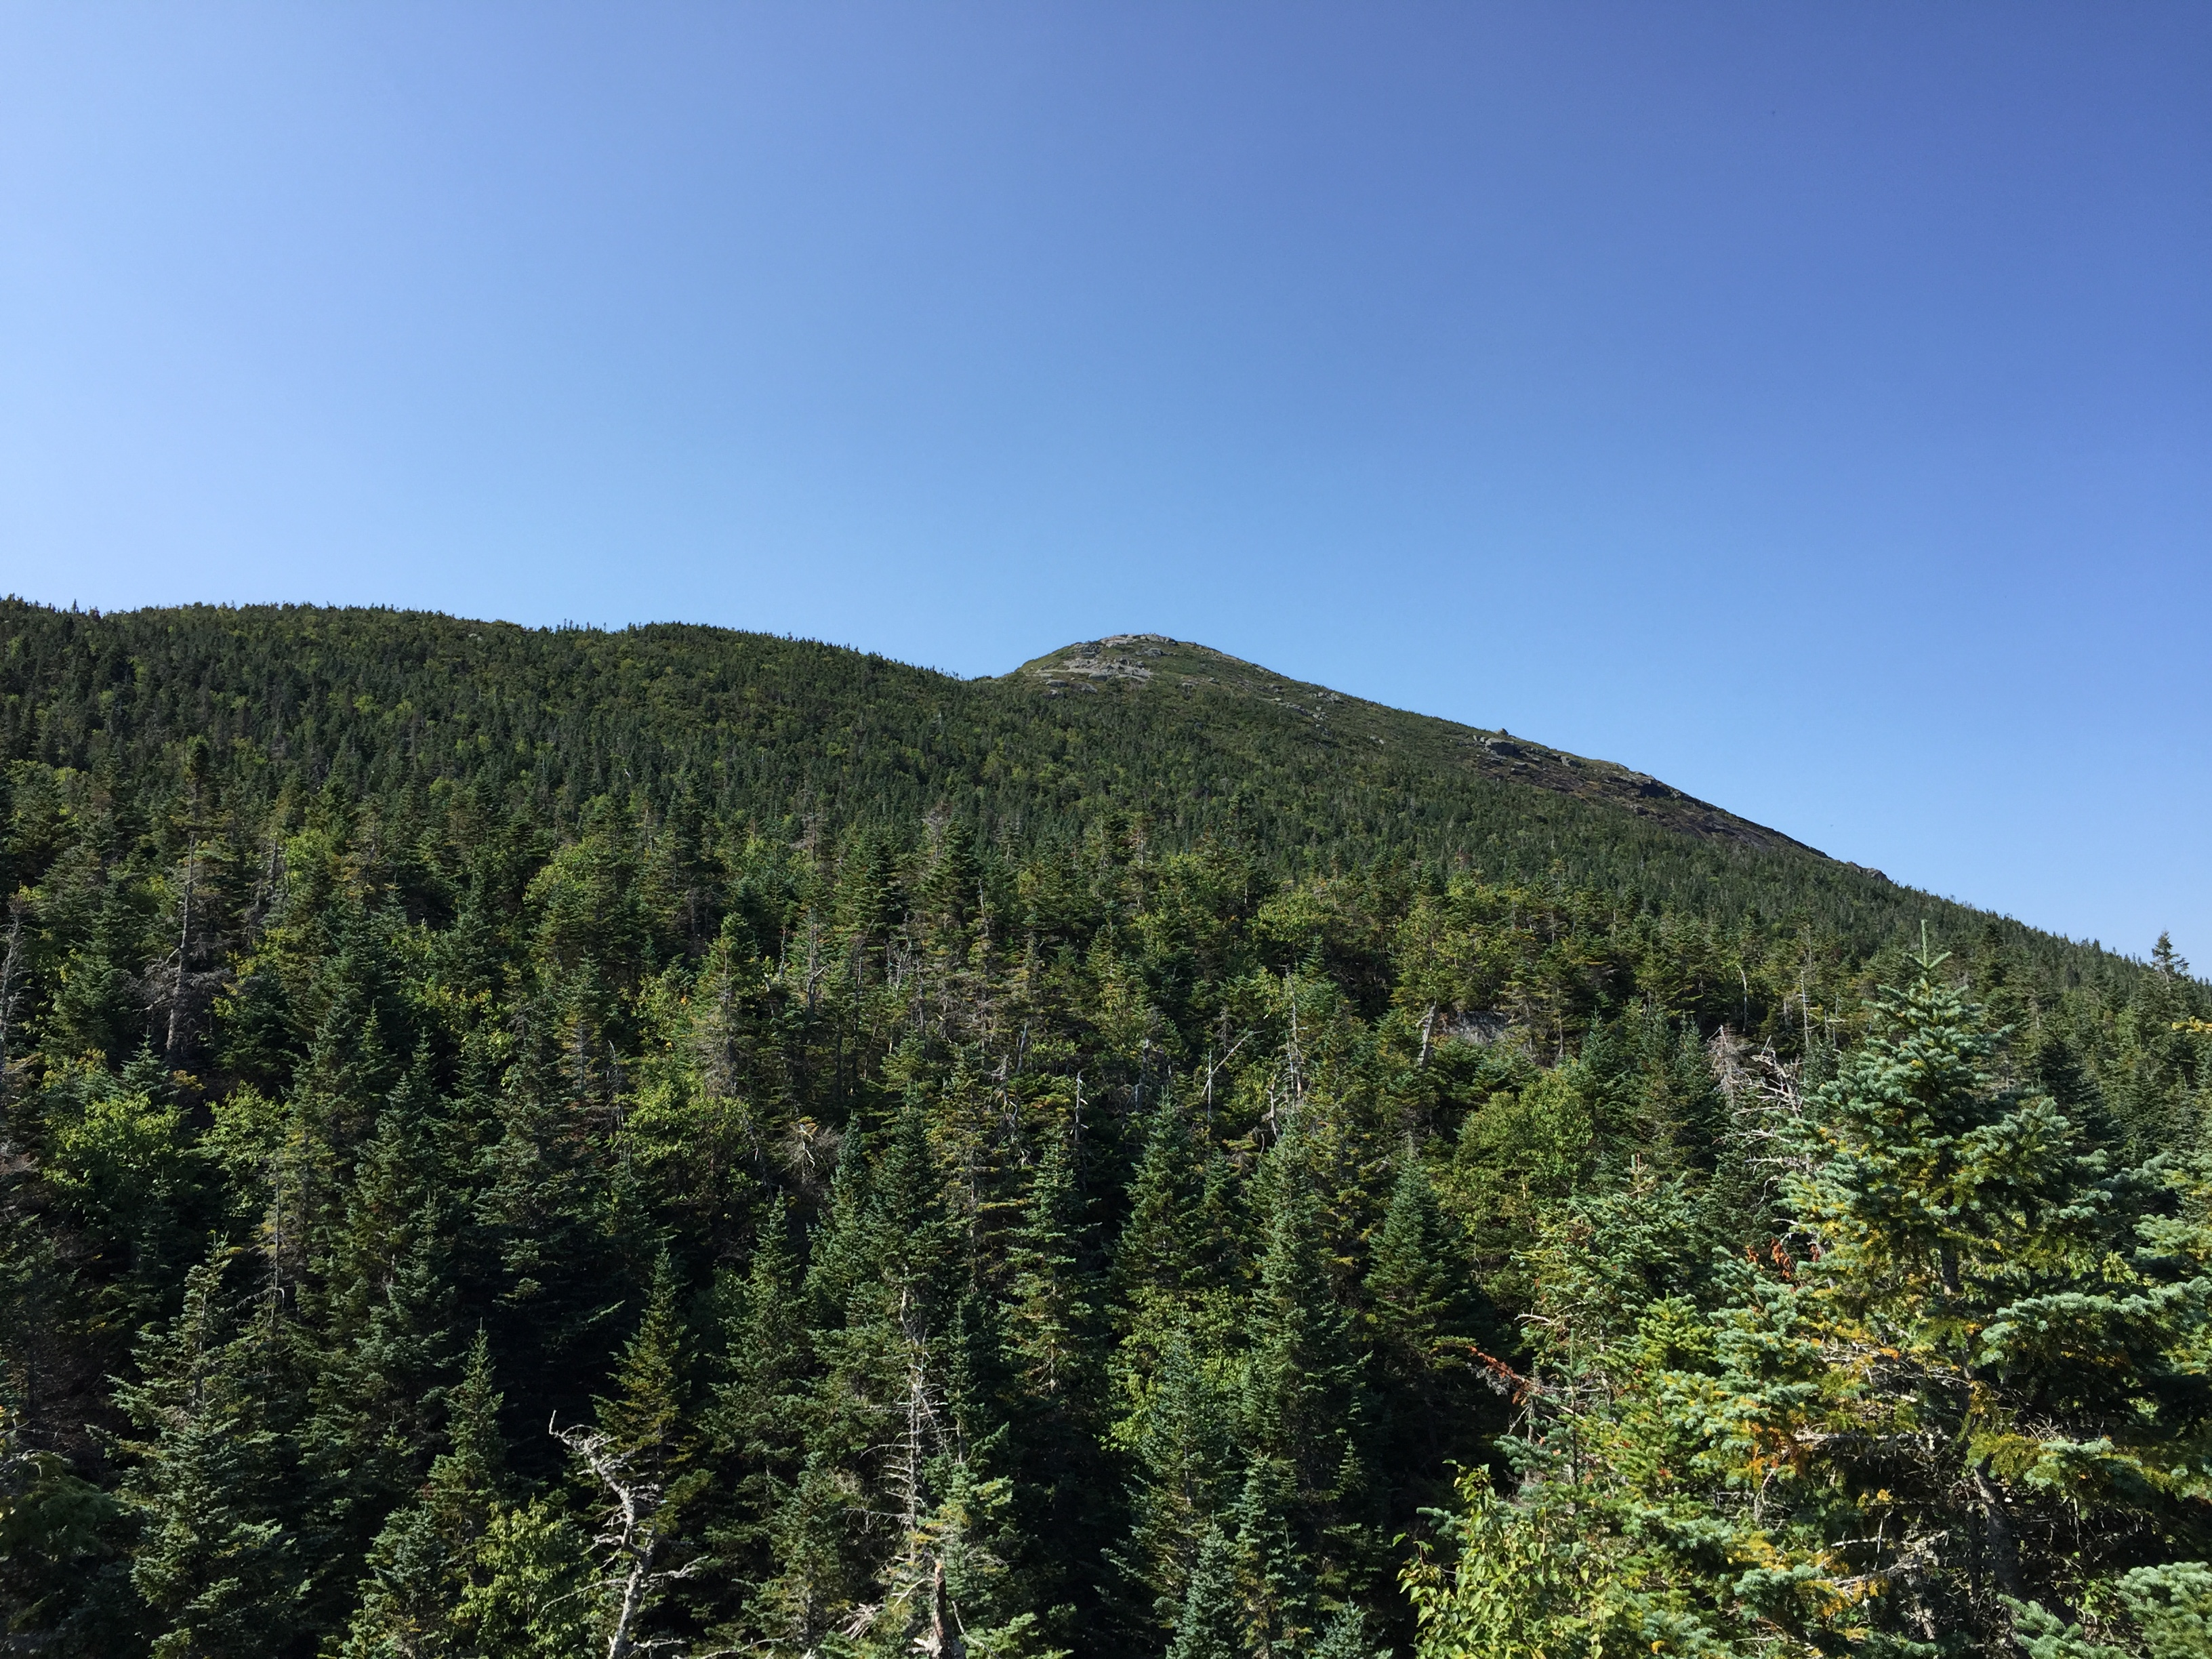 New york essex county keene - File 2016 09 04 10 55 54 View Towards Mount Marcy From The